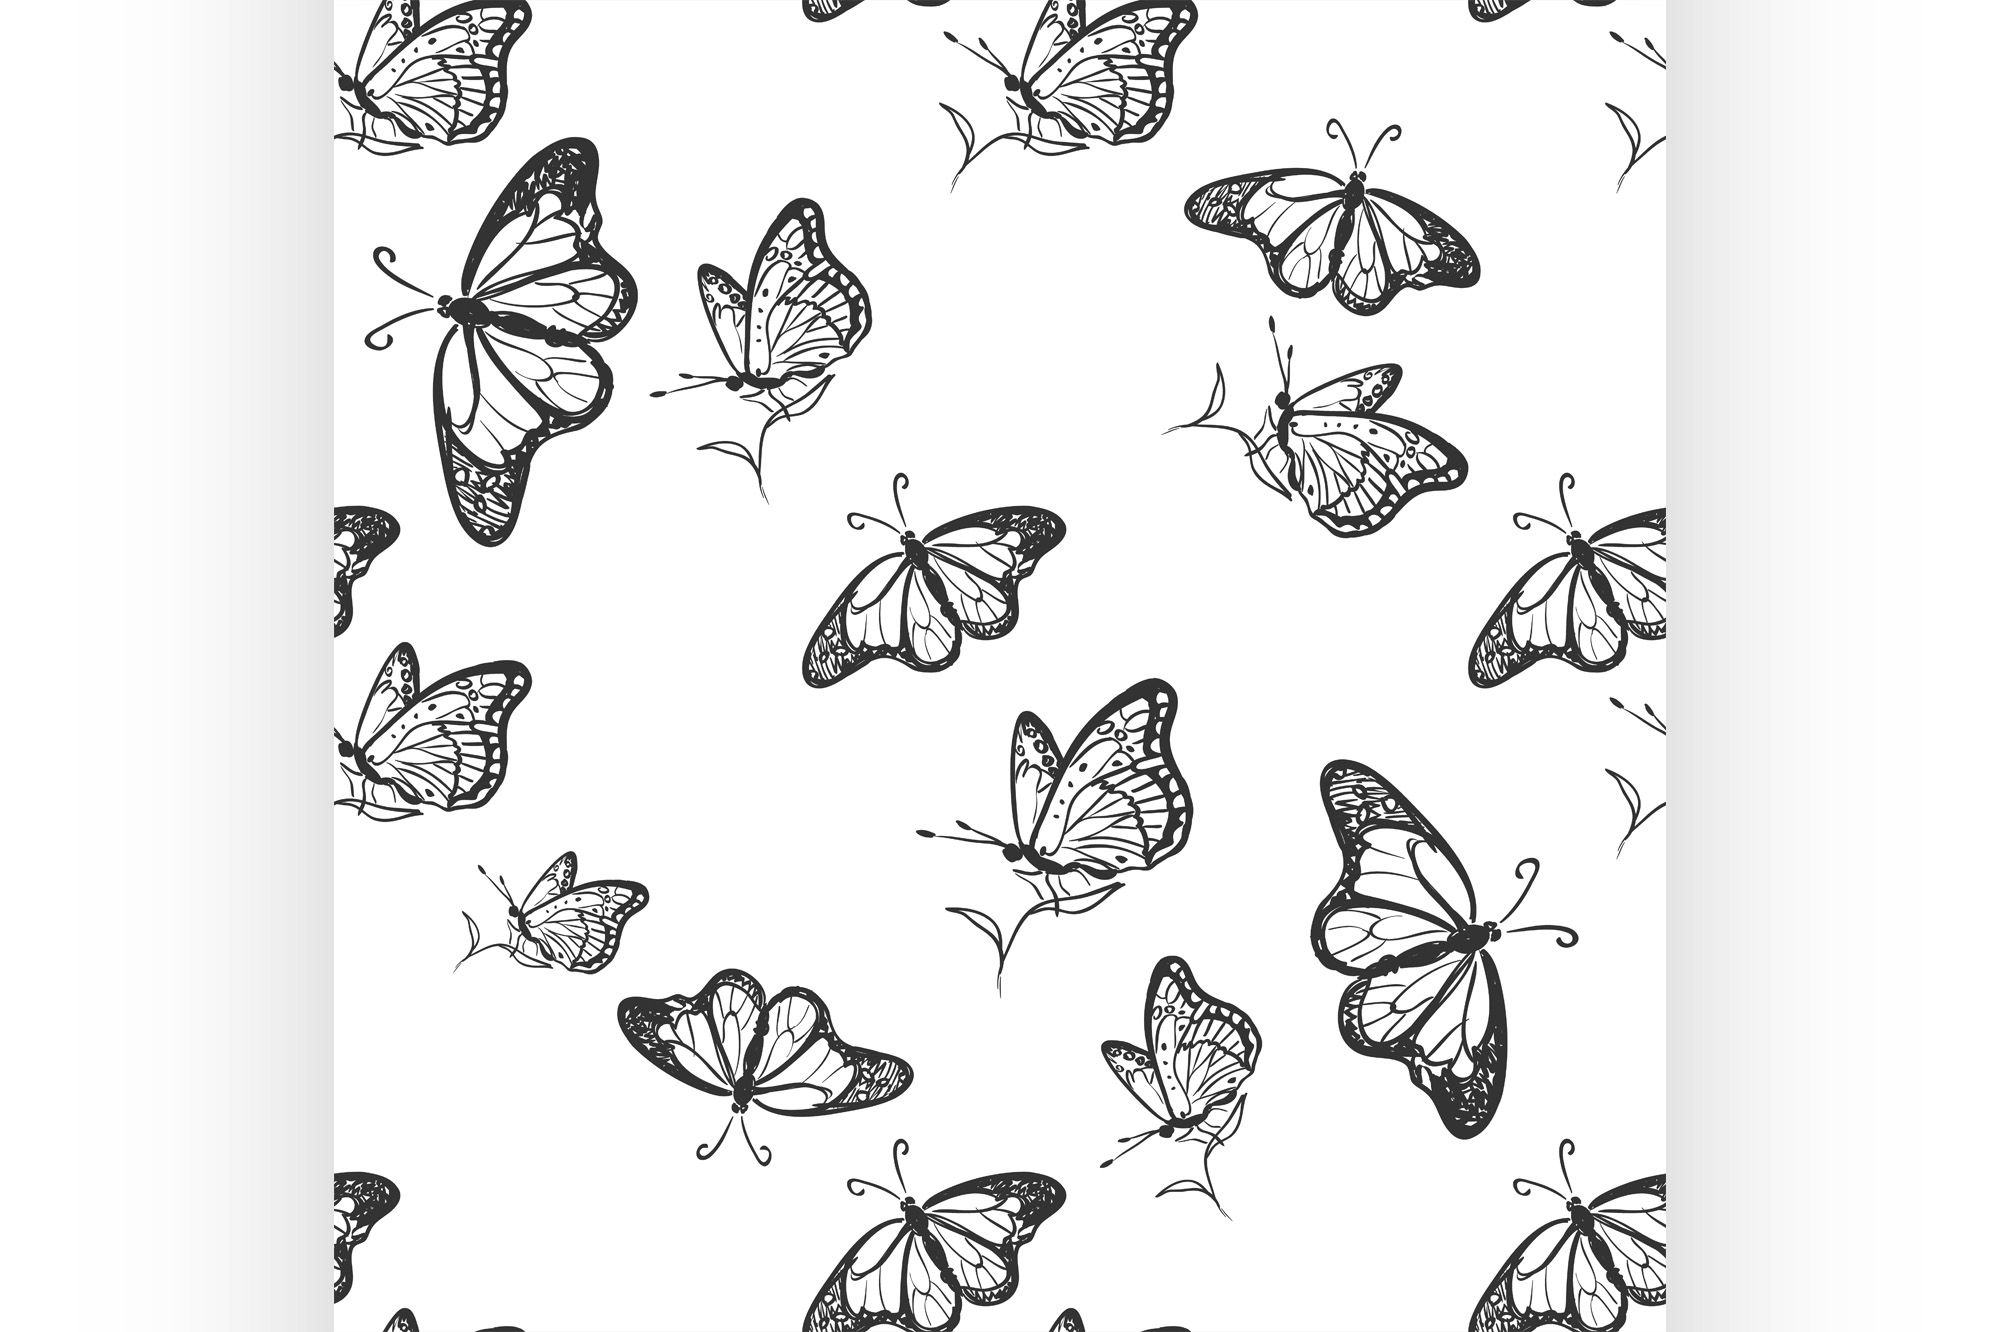 Doodle Butterfly Pattern (Graphic) by netkov1 · Creative